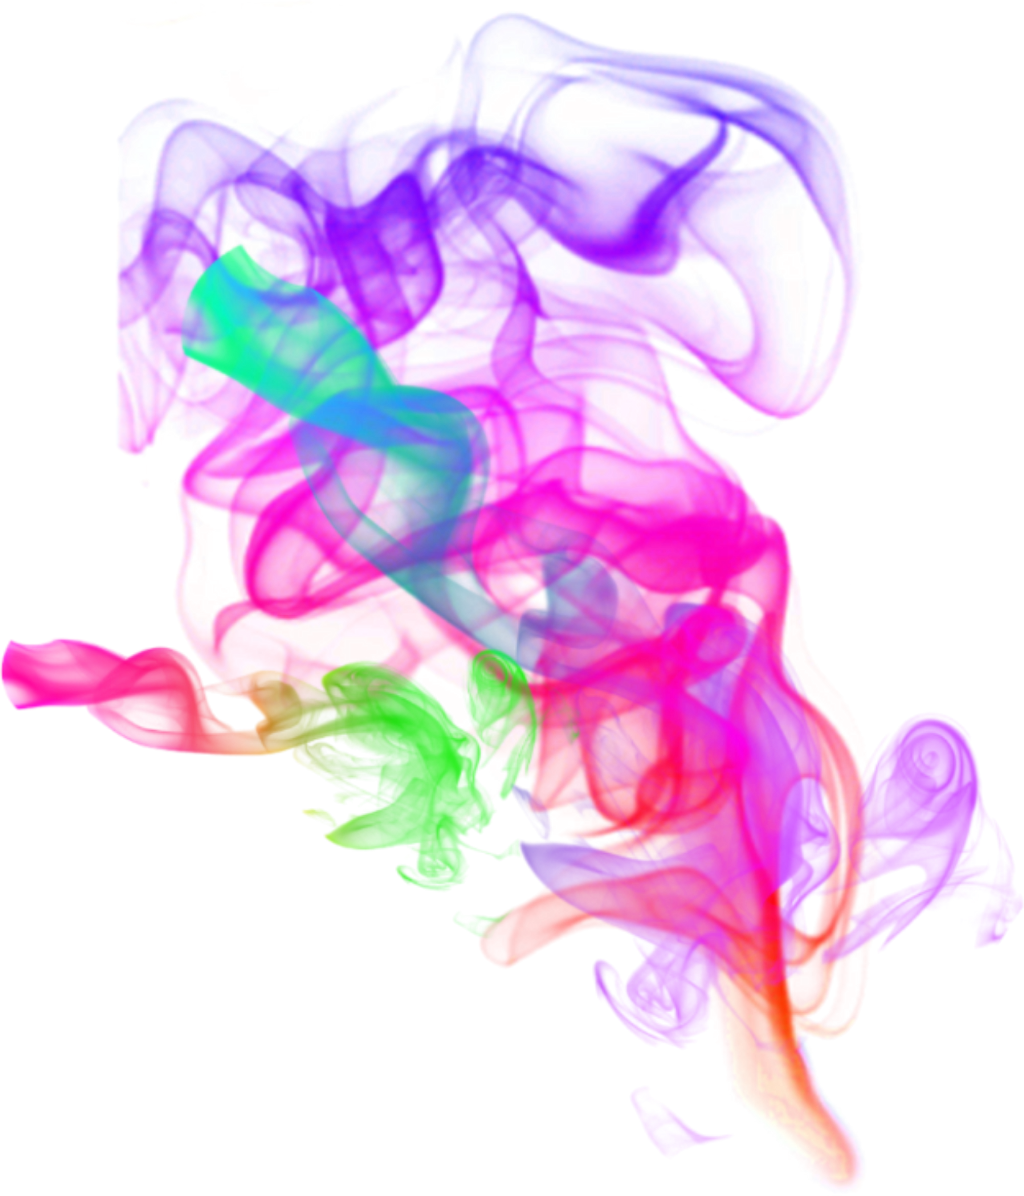 art designs colorful smoke effects sticker